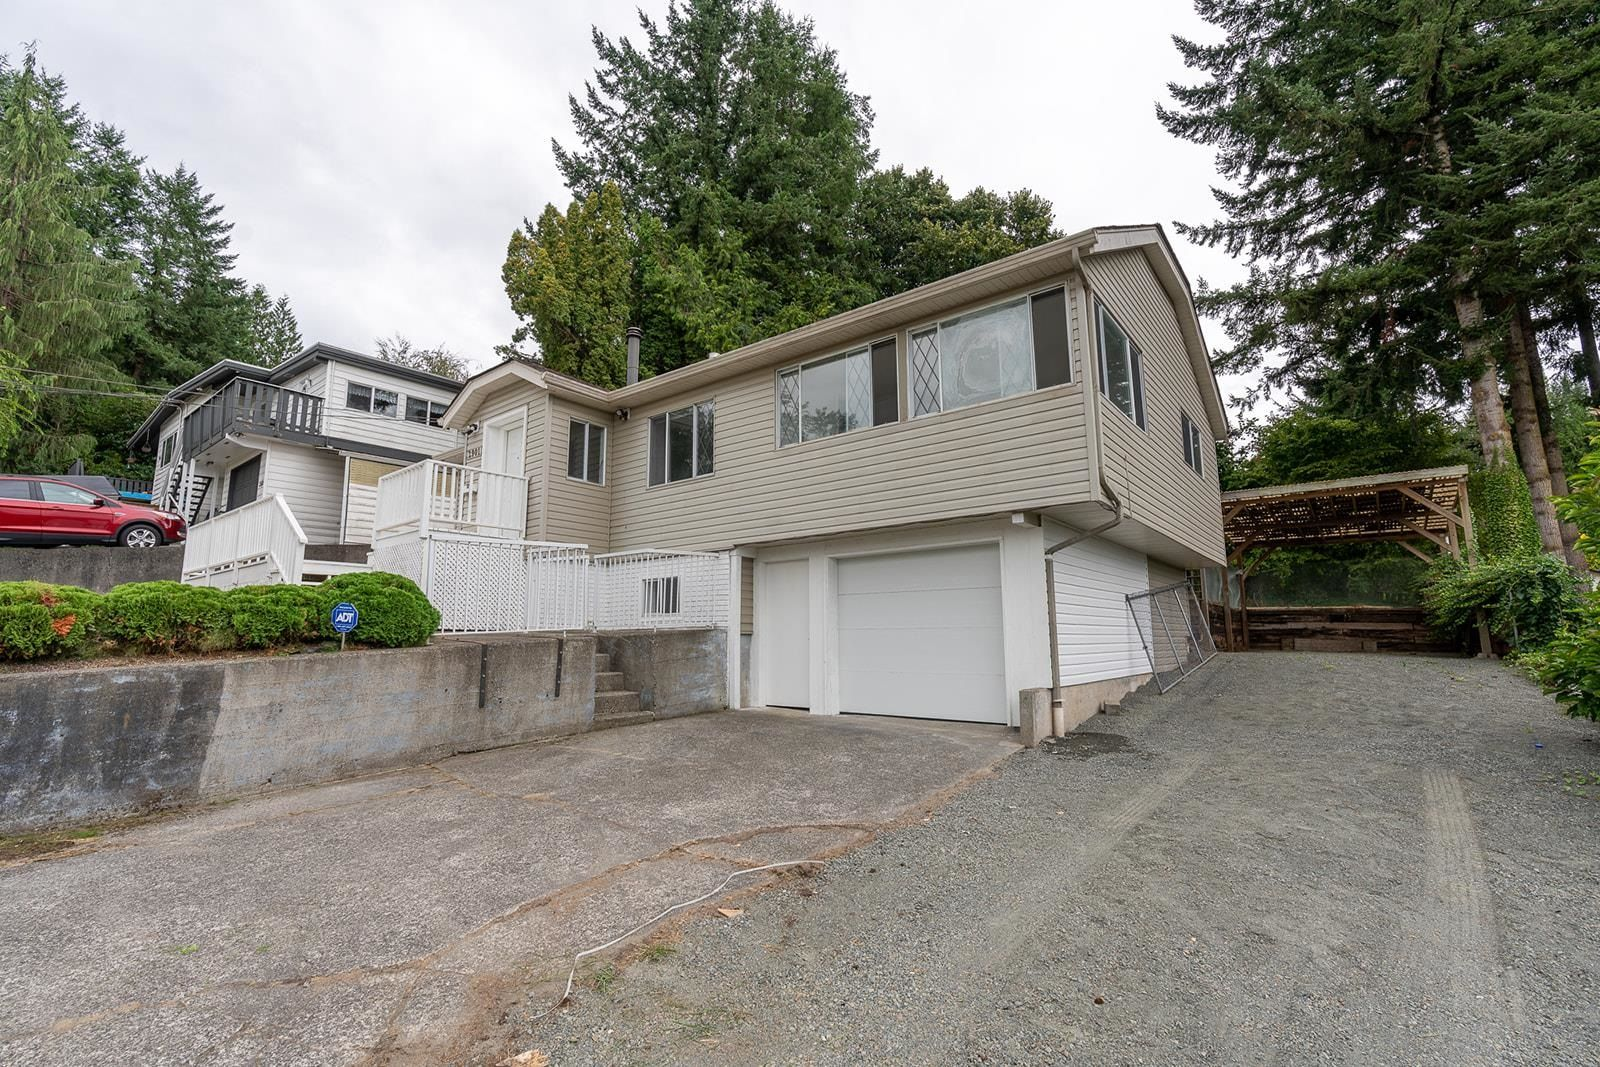 Main Photo: 2901 MCCALLUM Road in Abbotsford: Central Abbotsford House for sale : MLS®# R2610152